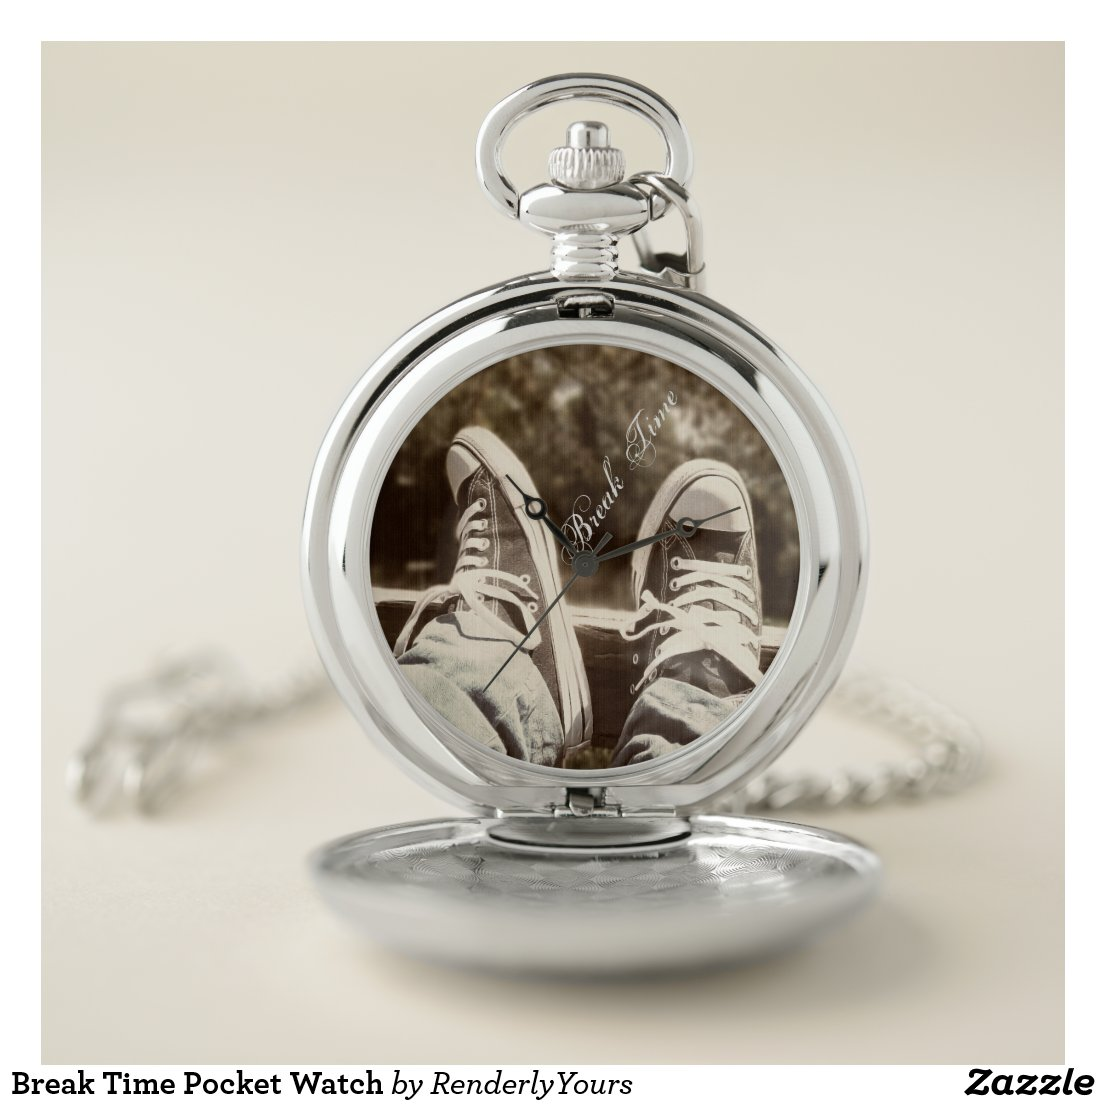 Break Time Pocket Watch